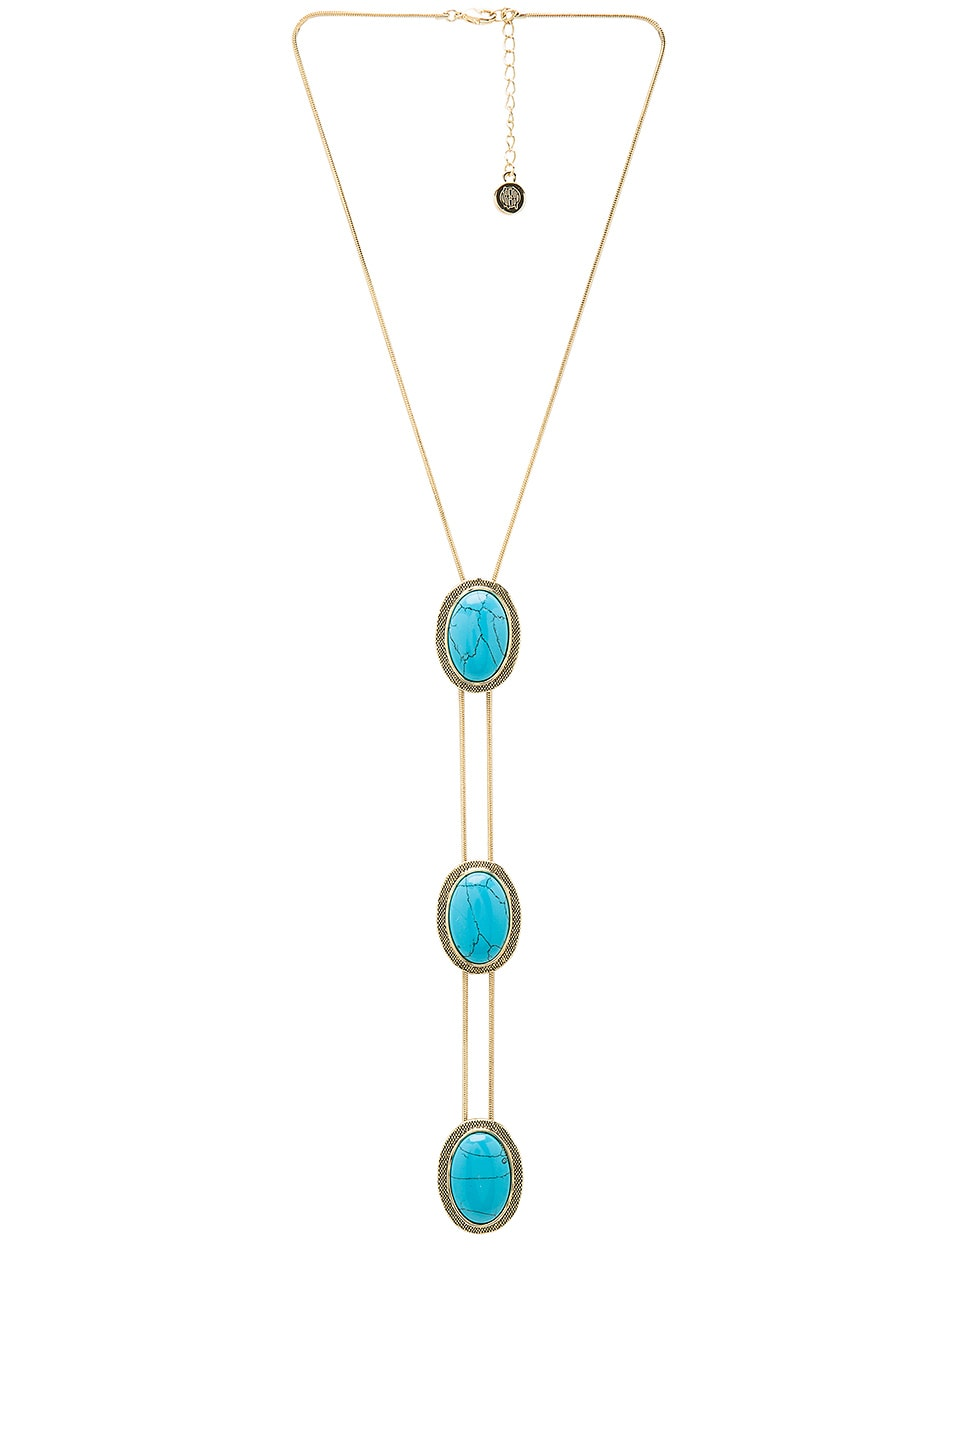 House of Harlow 1960 Tanta 3 Tier Bolo Pendant in Gold & Turquoise